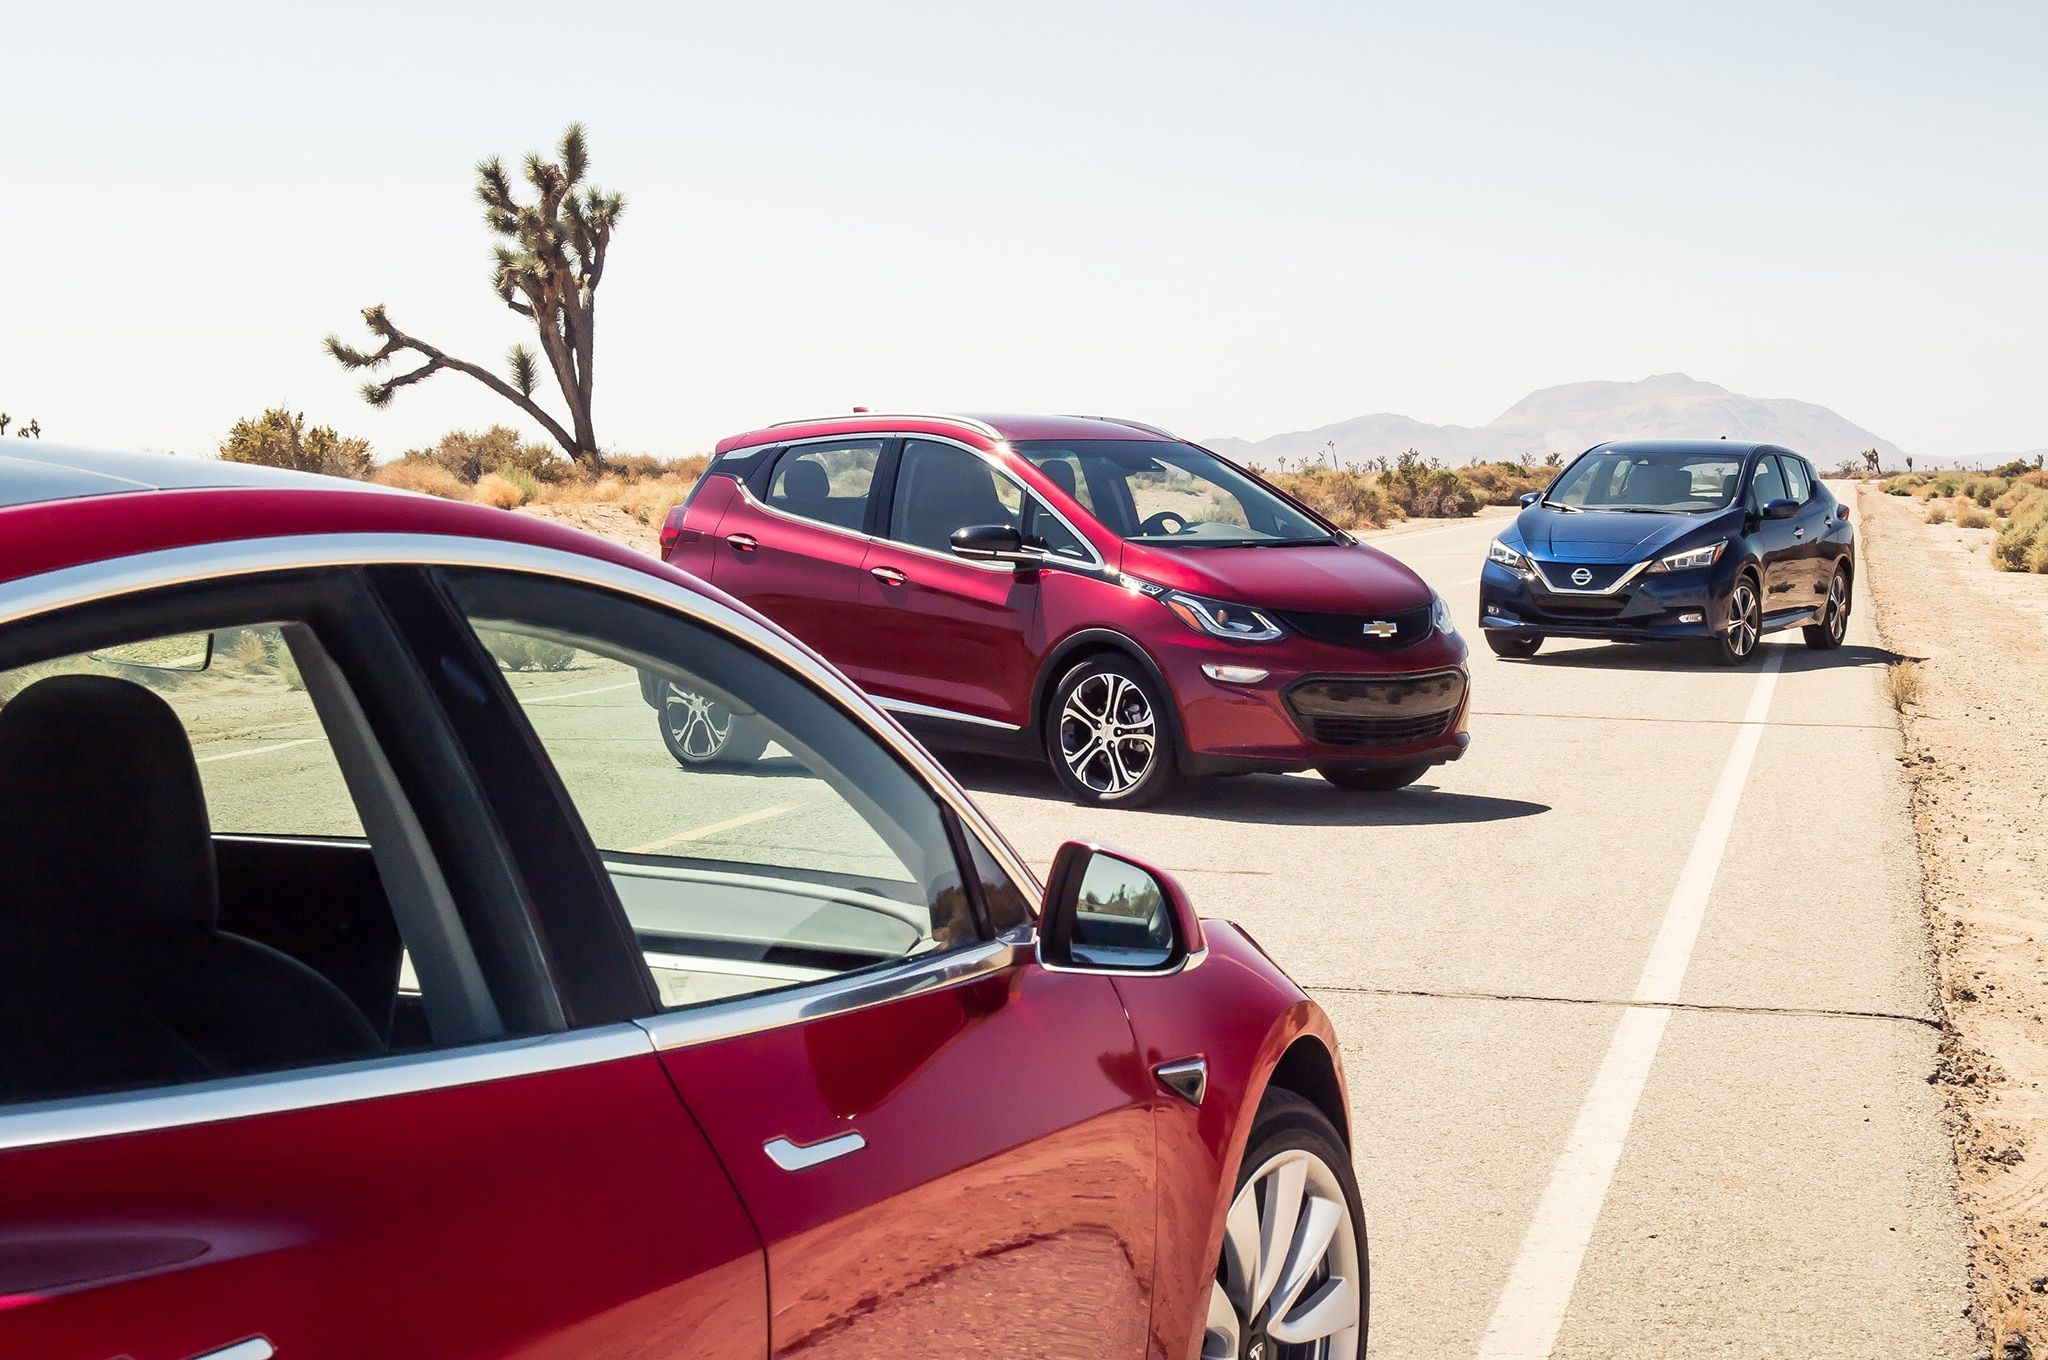 The Automobile 2 0 Chevrolet Bolt Ev Vs Nissan Leaf Vs Tesla